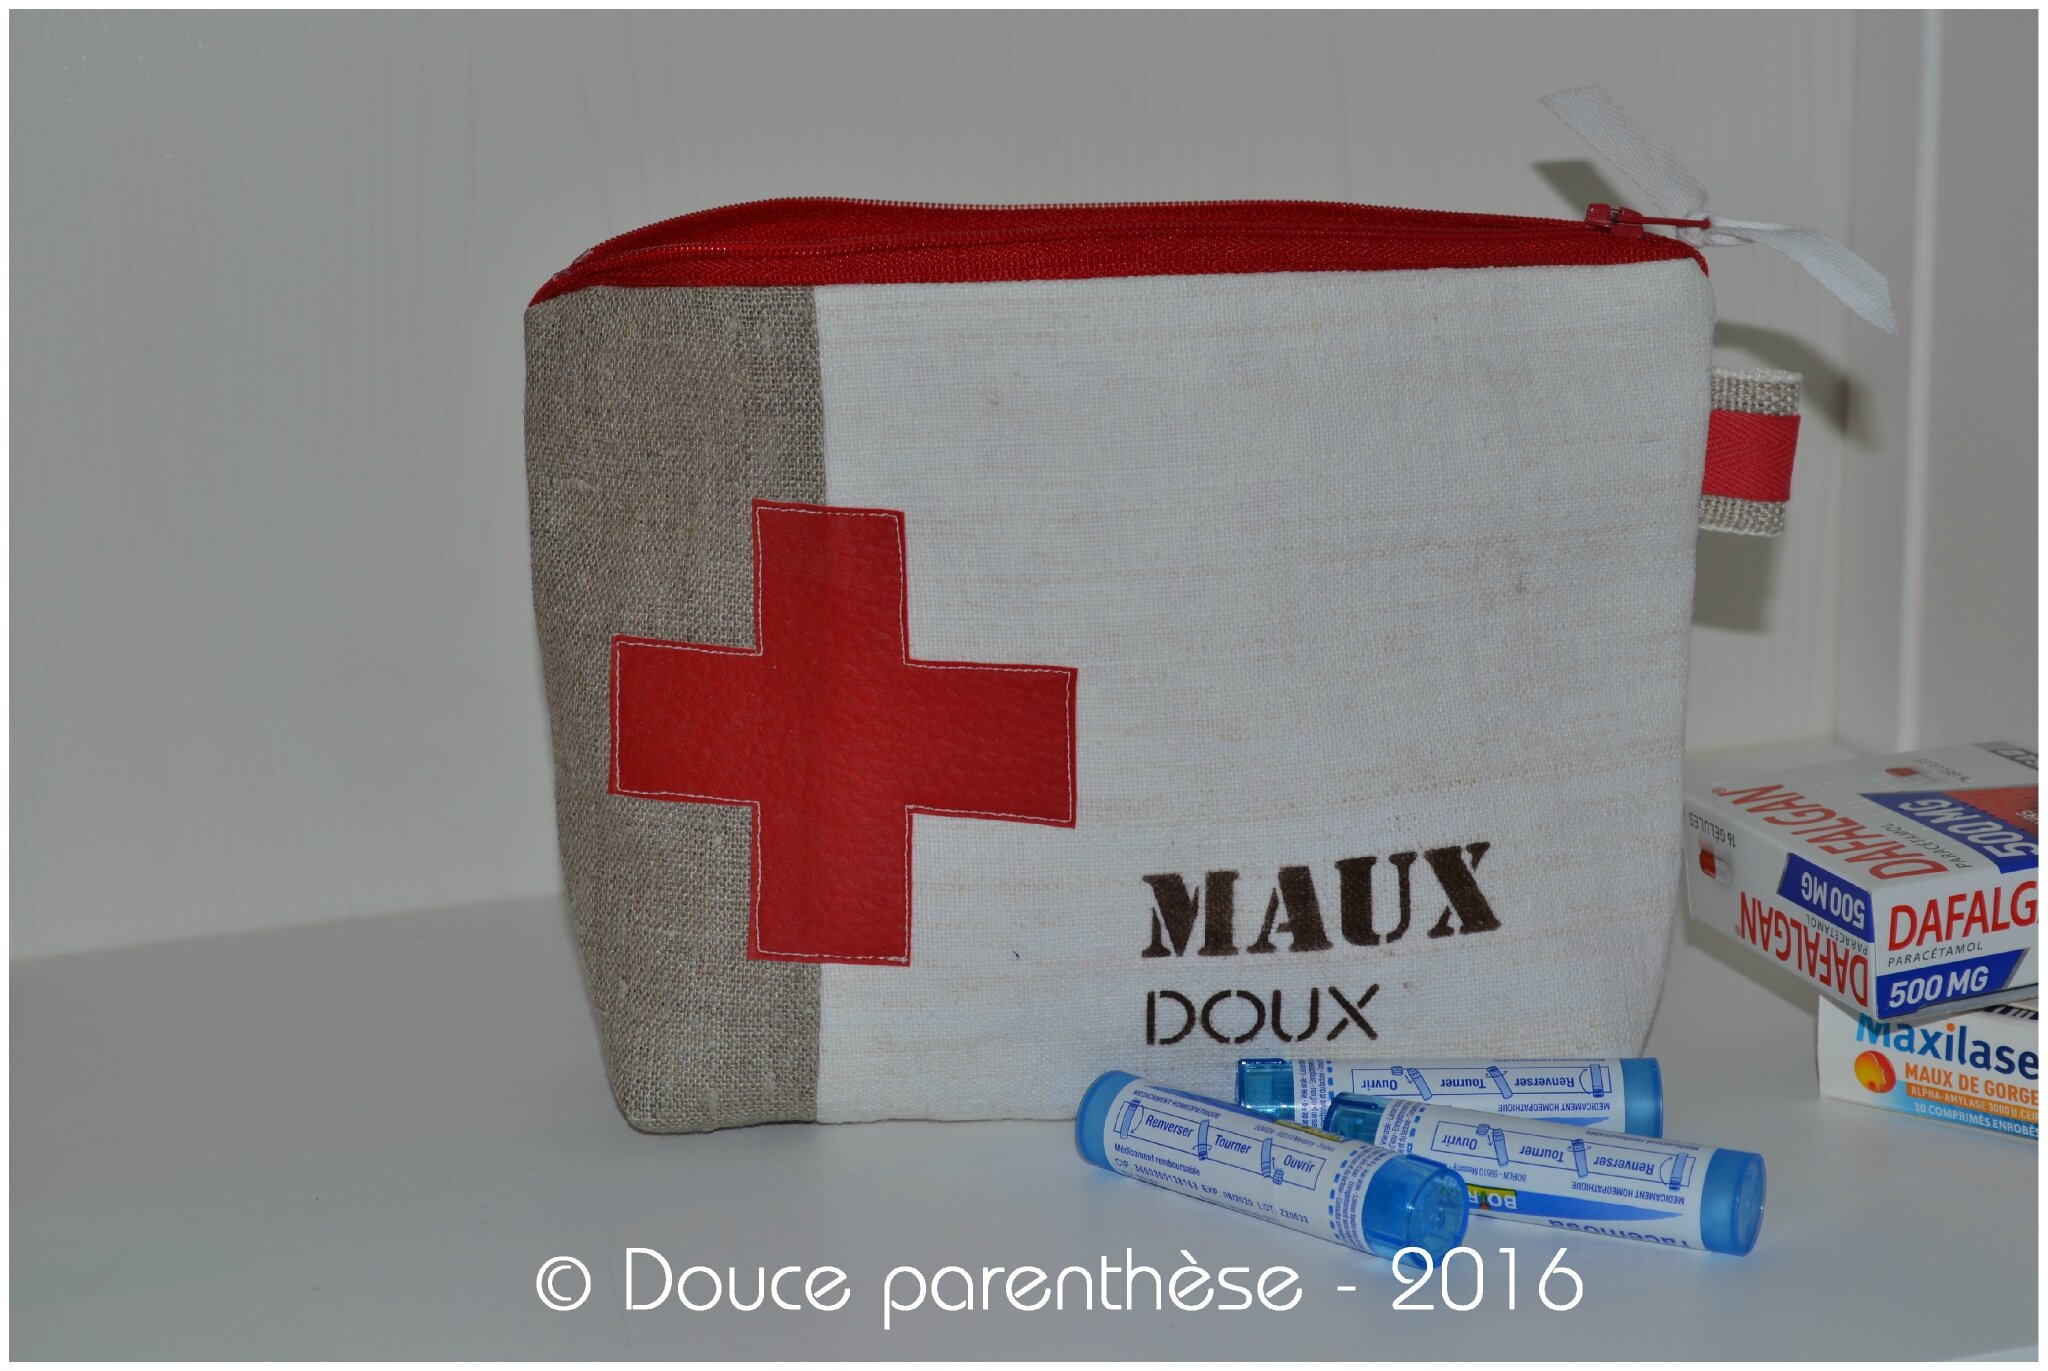 Maux 1